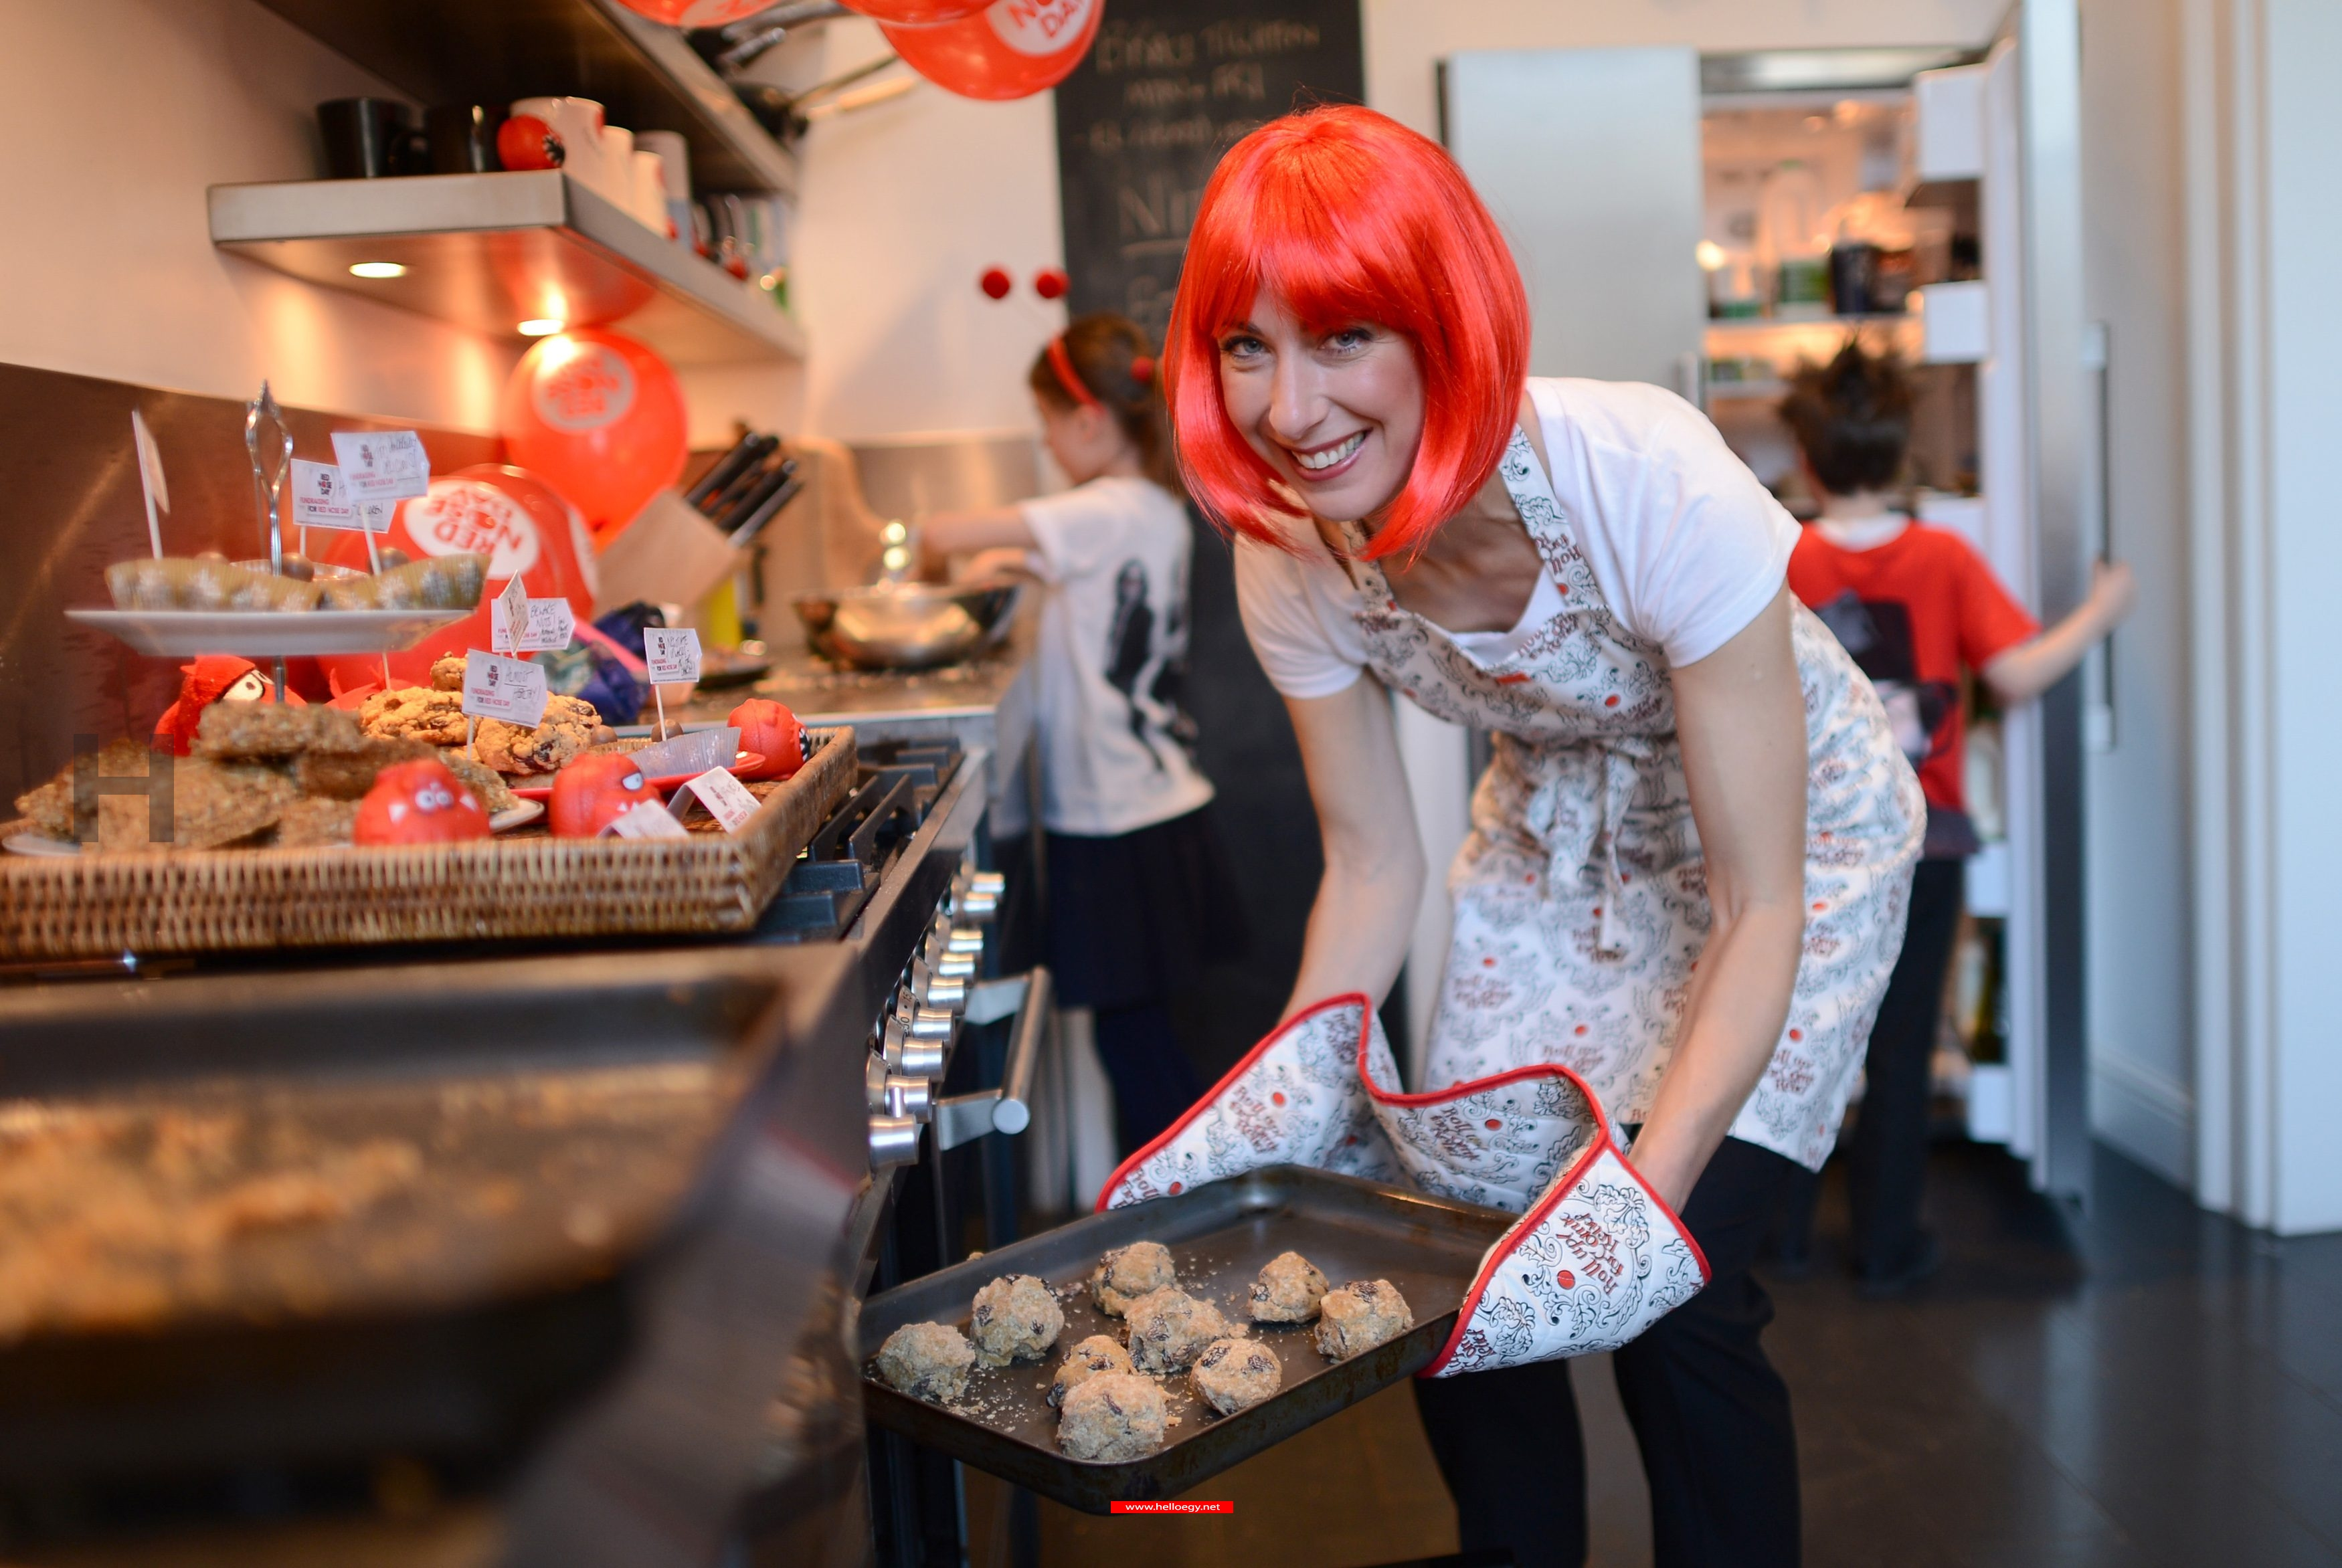 Samantha Cameron Wears A Red Wig And Bakes Cakes For Comic Relief